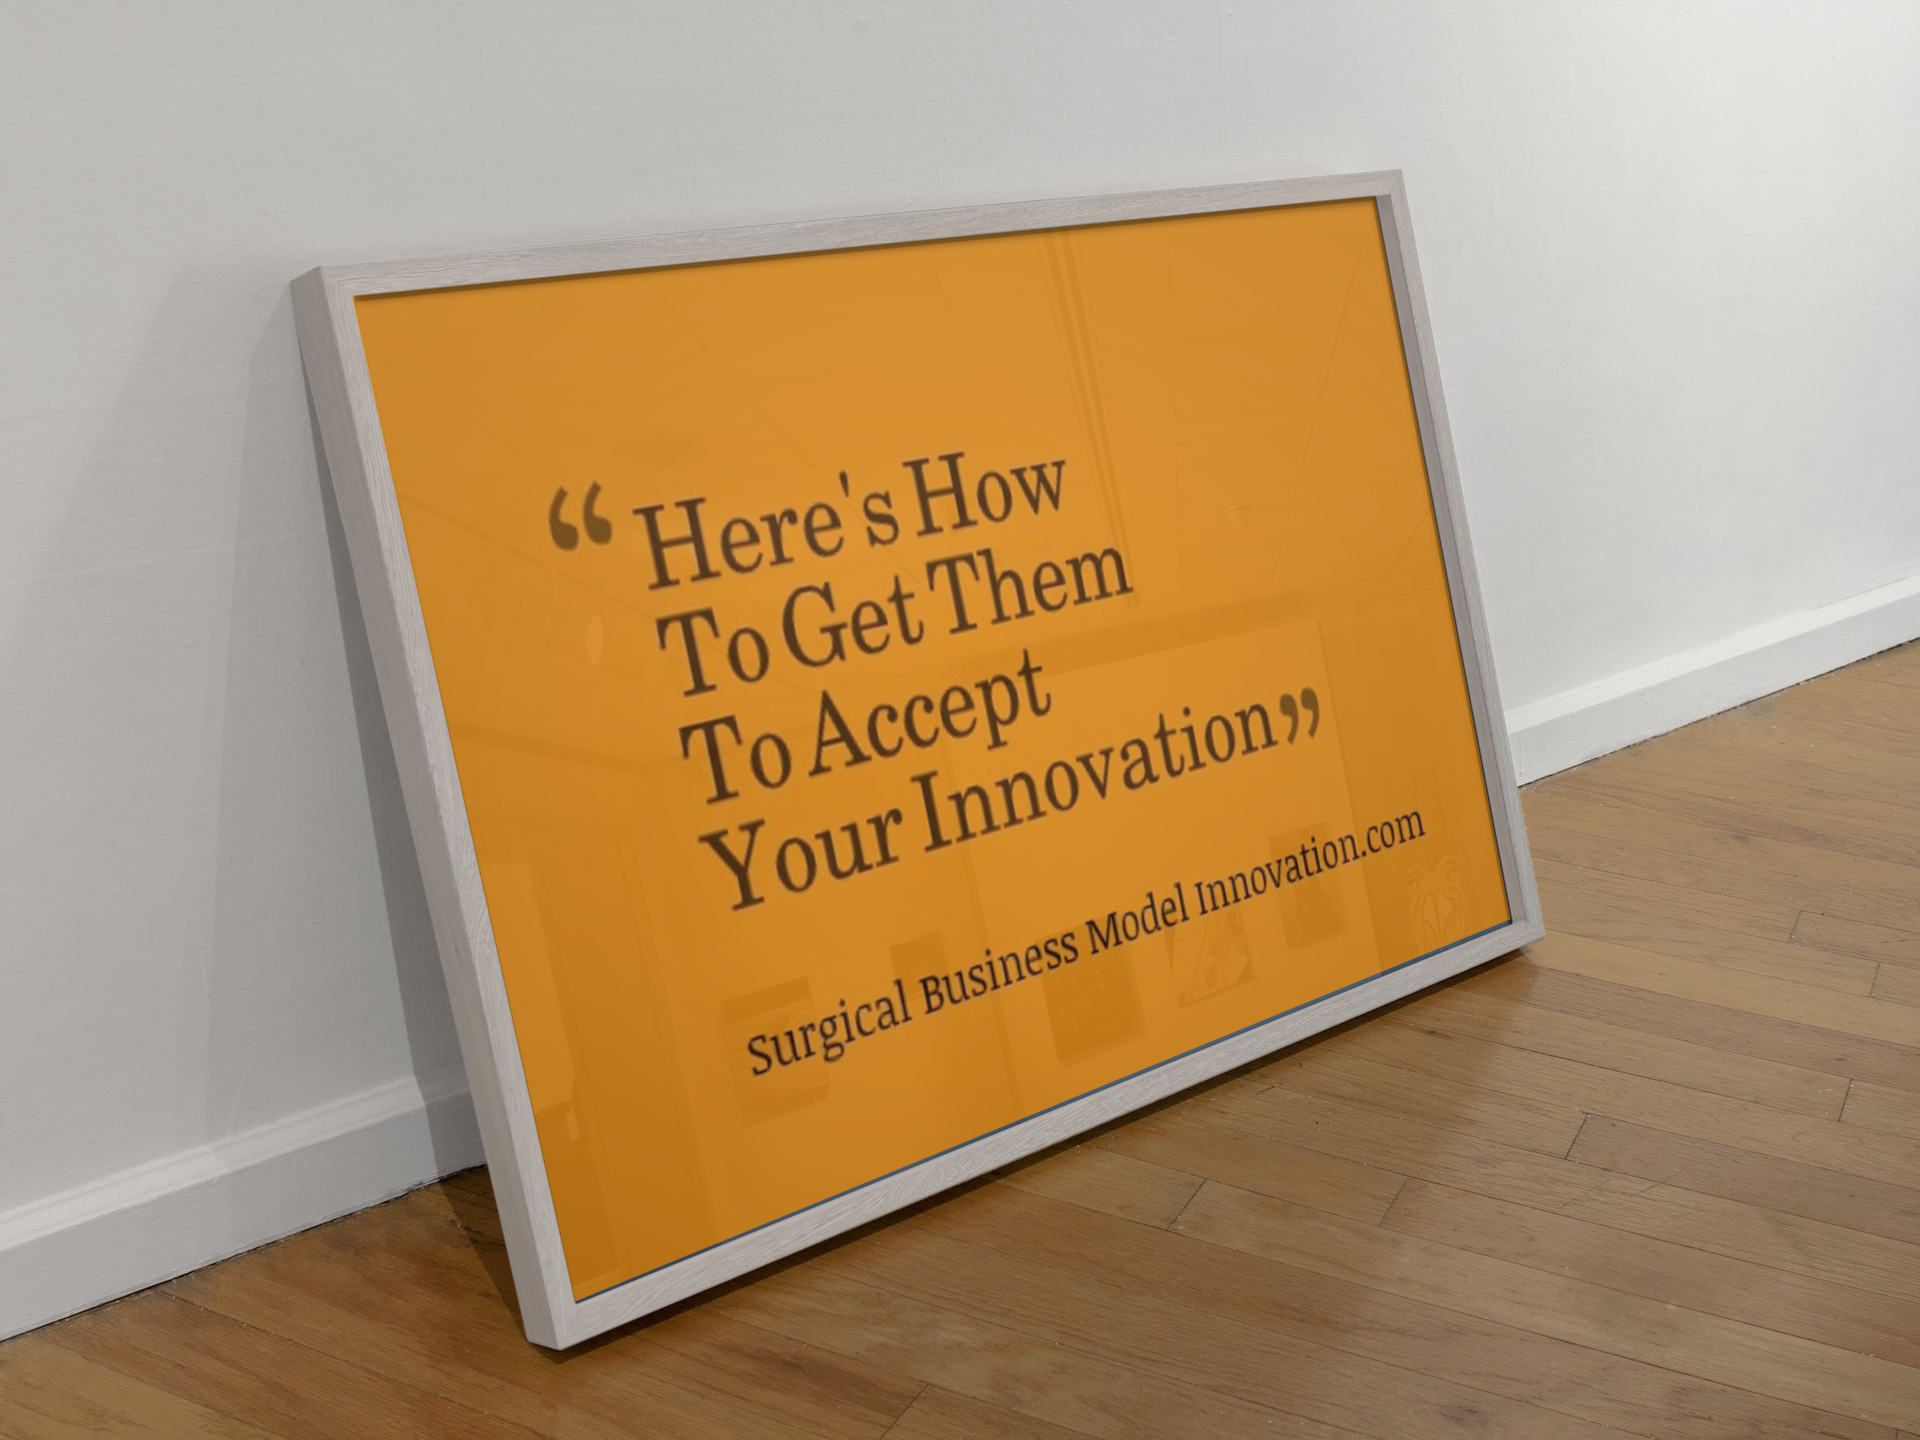 Here's How To Get Them To Accept Your Innovation